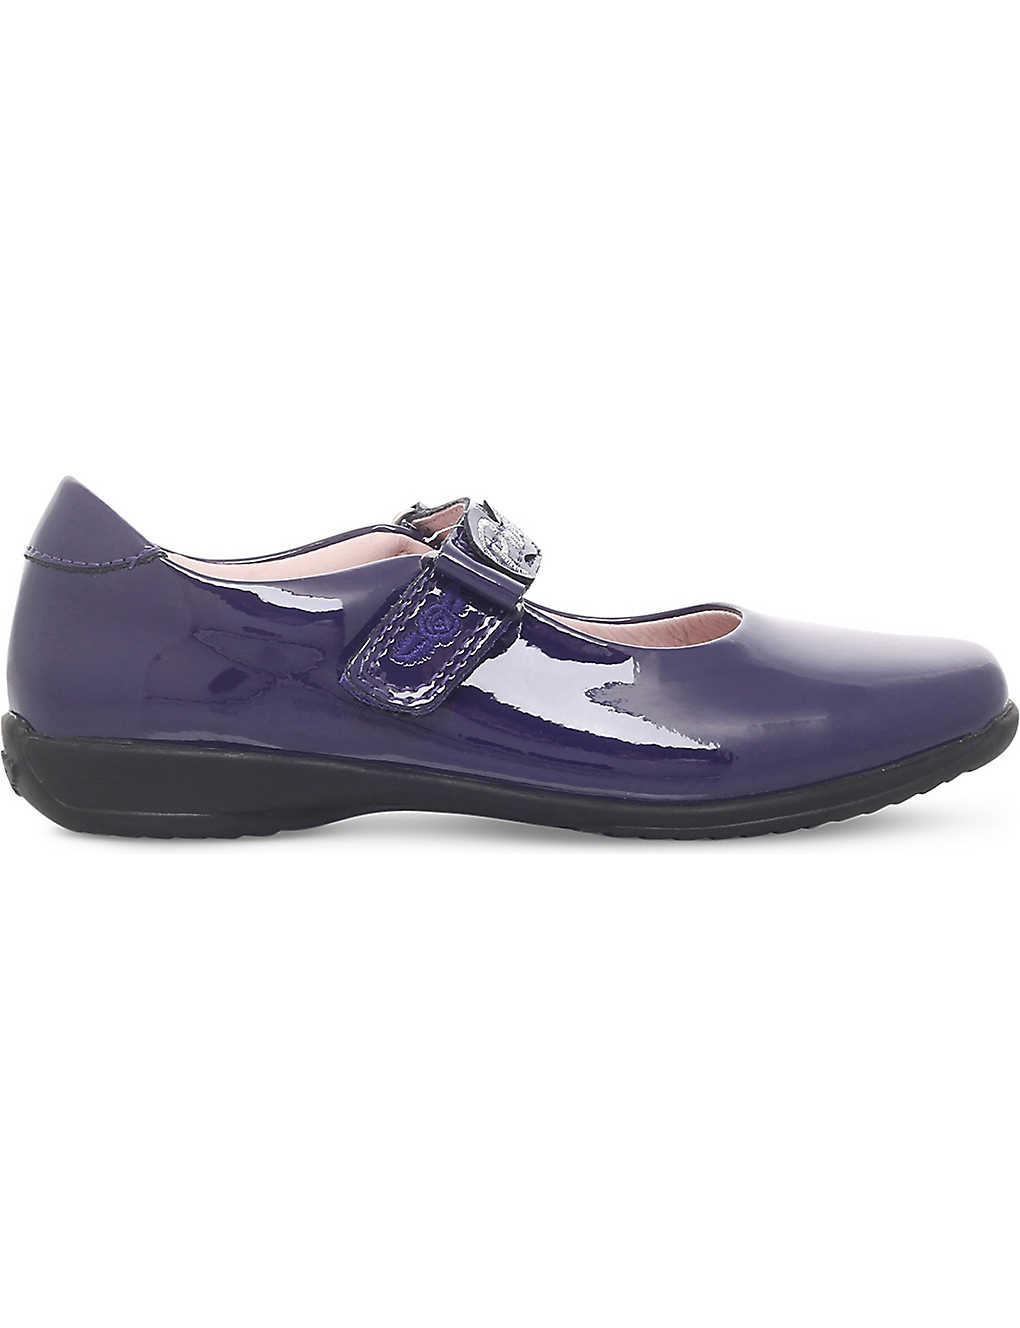 ff4b5f4f6b583 LELLI KELLY - Sheila patent-leather school shoes 3-9 years ...